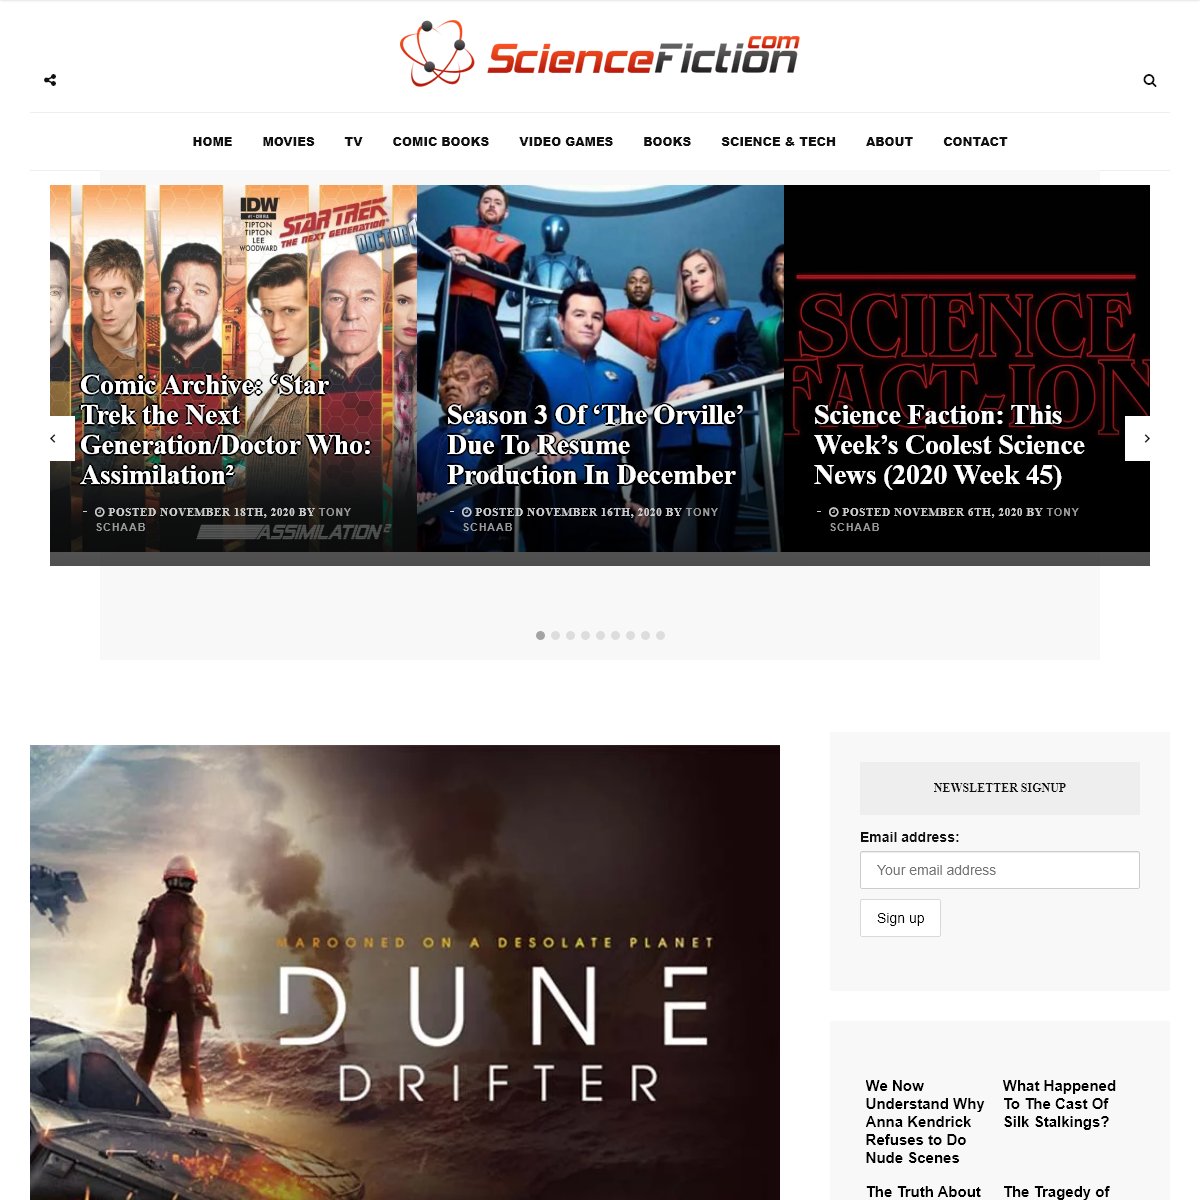 ScienceFiction.com - Science Fiction (sci-fi) news, books, tv, movies, comic books, video games and more...